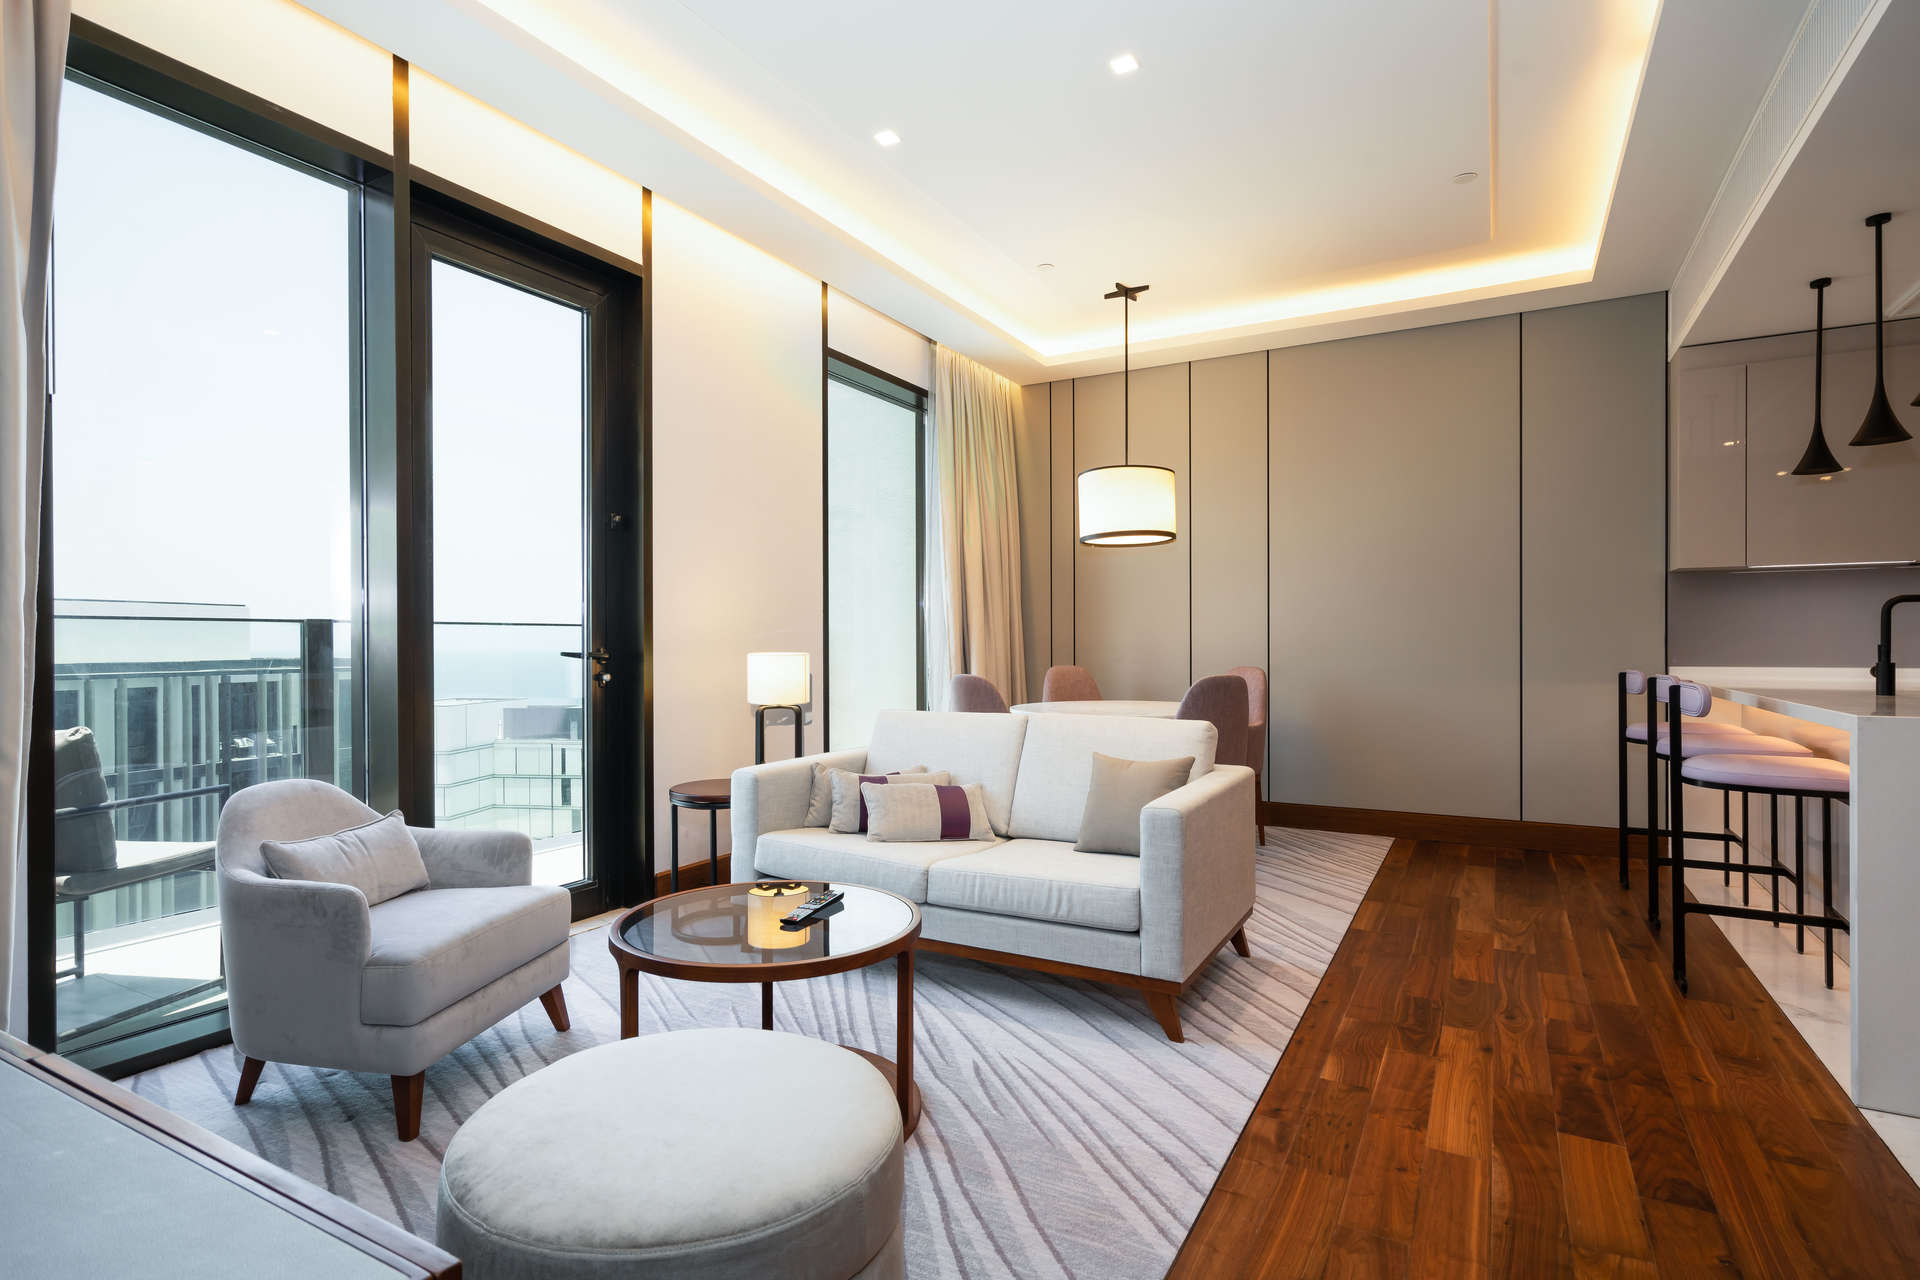 Apartments For Rent In The Residences At Caesars Resort, Bluewaters